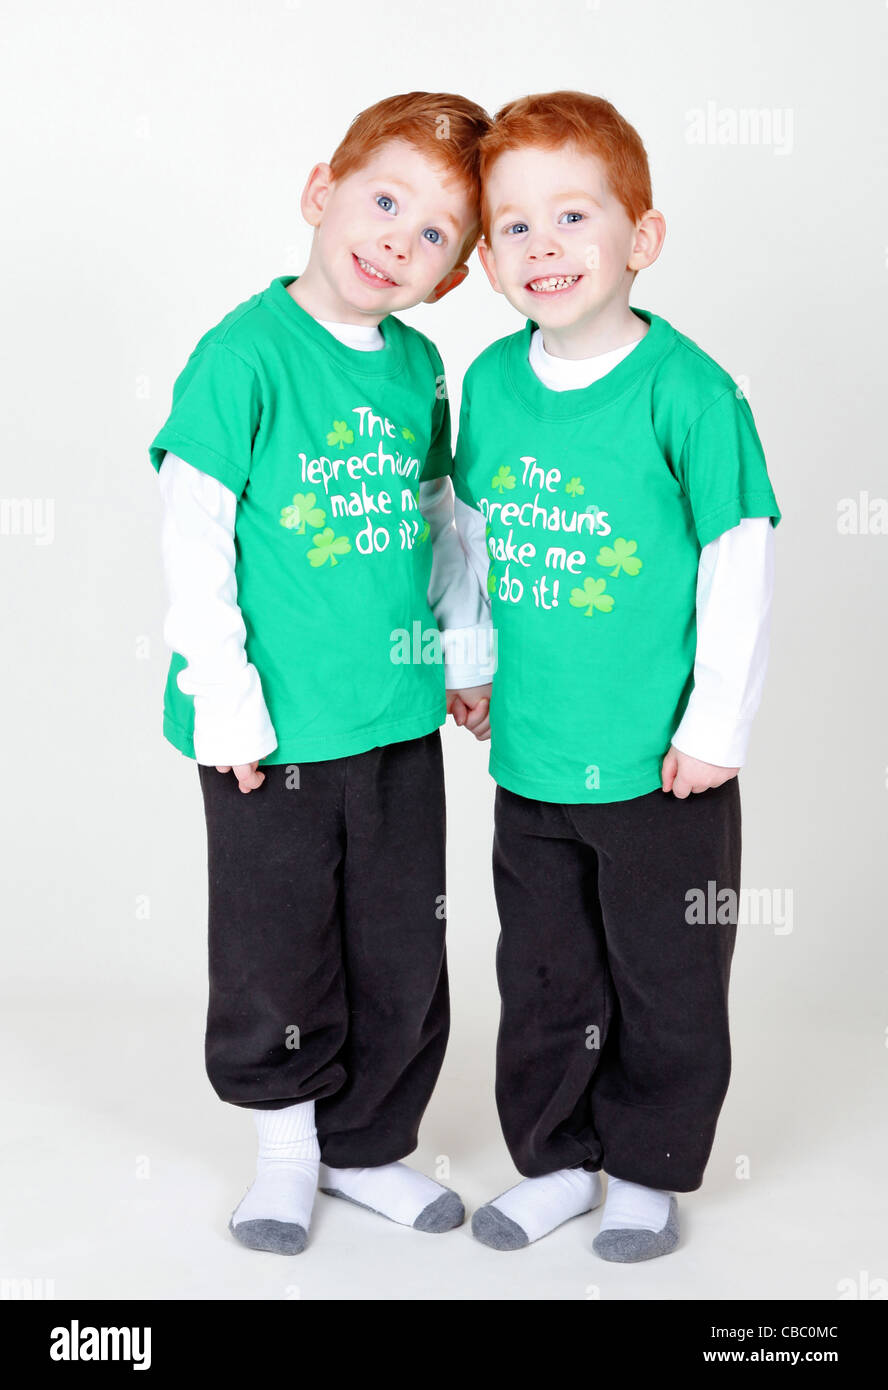 Smiling redheaded twins holding hands isolated on white - Stock Image